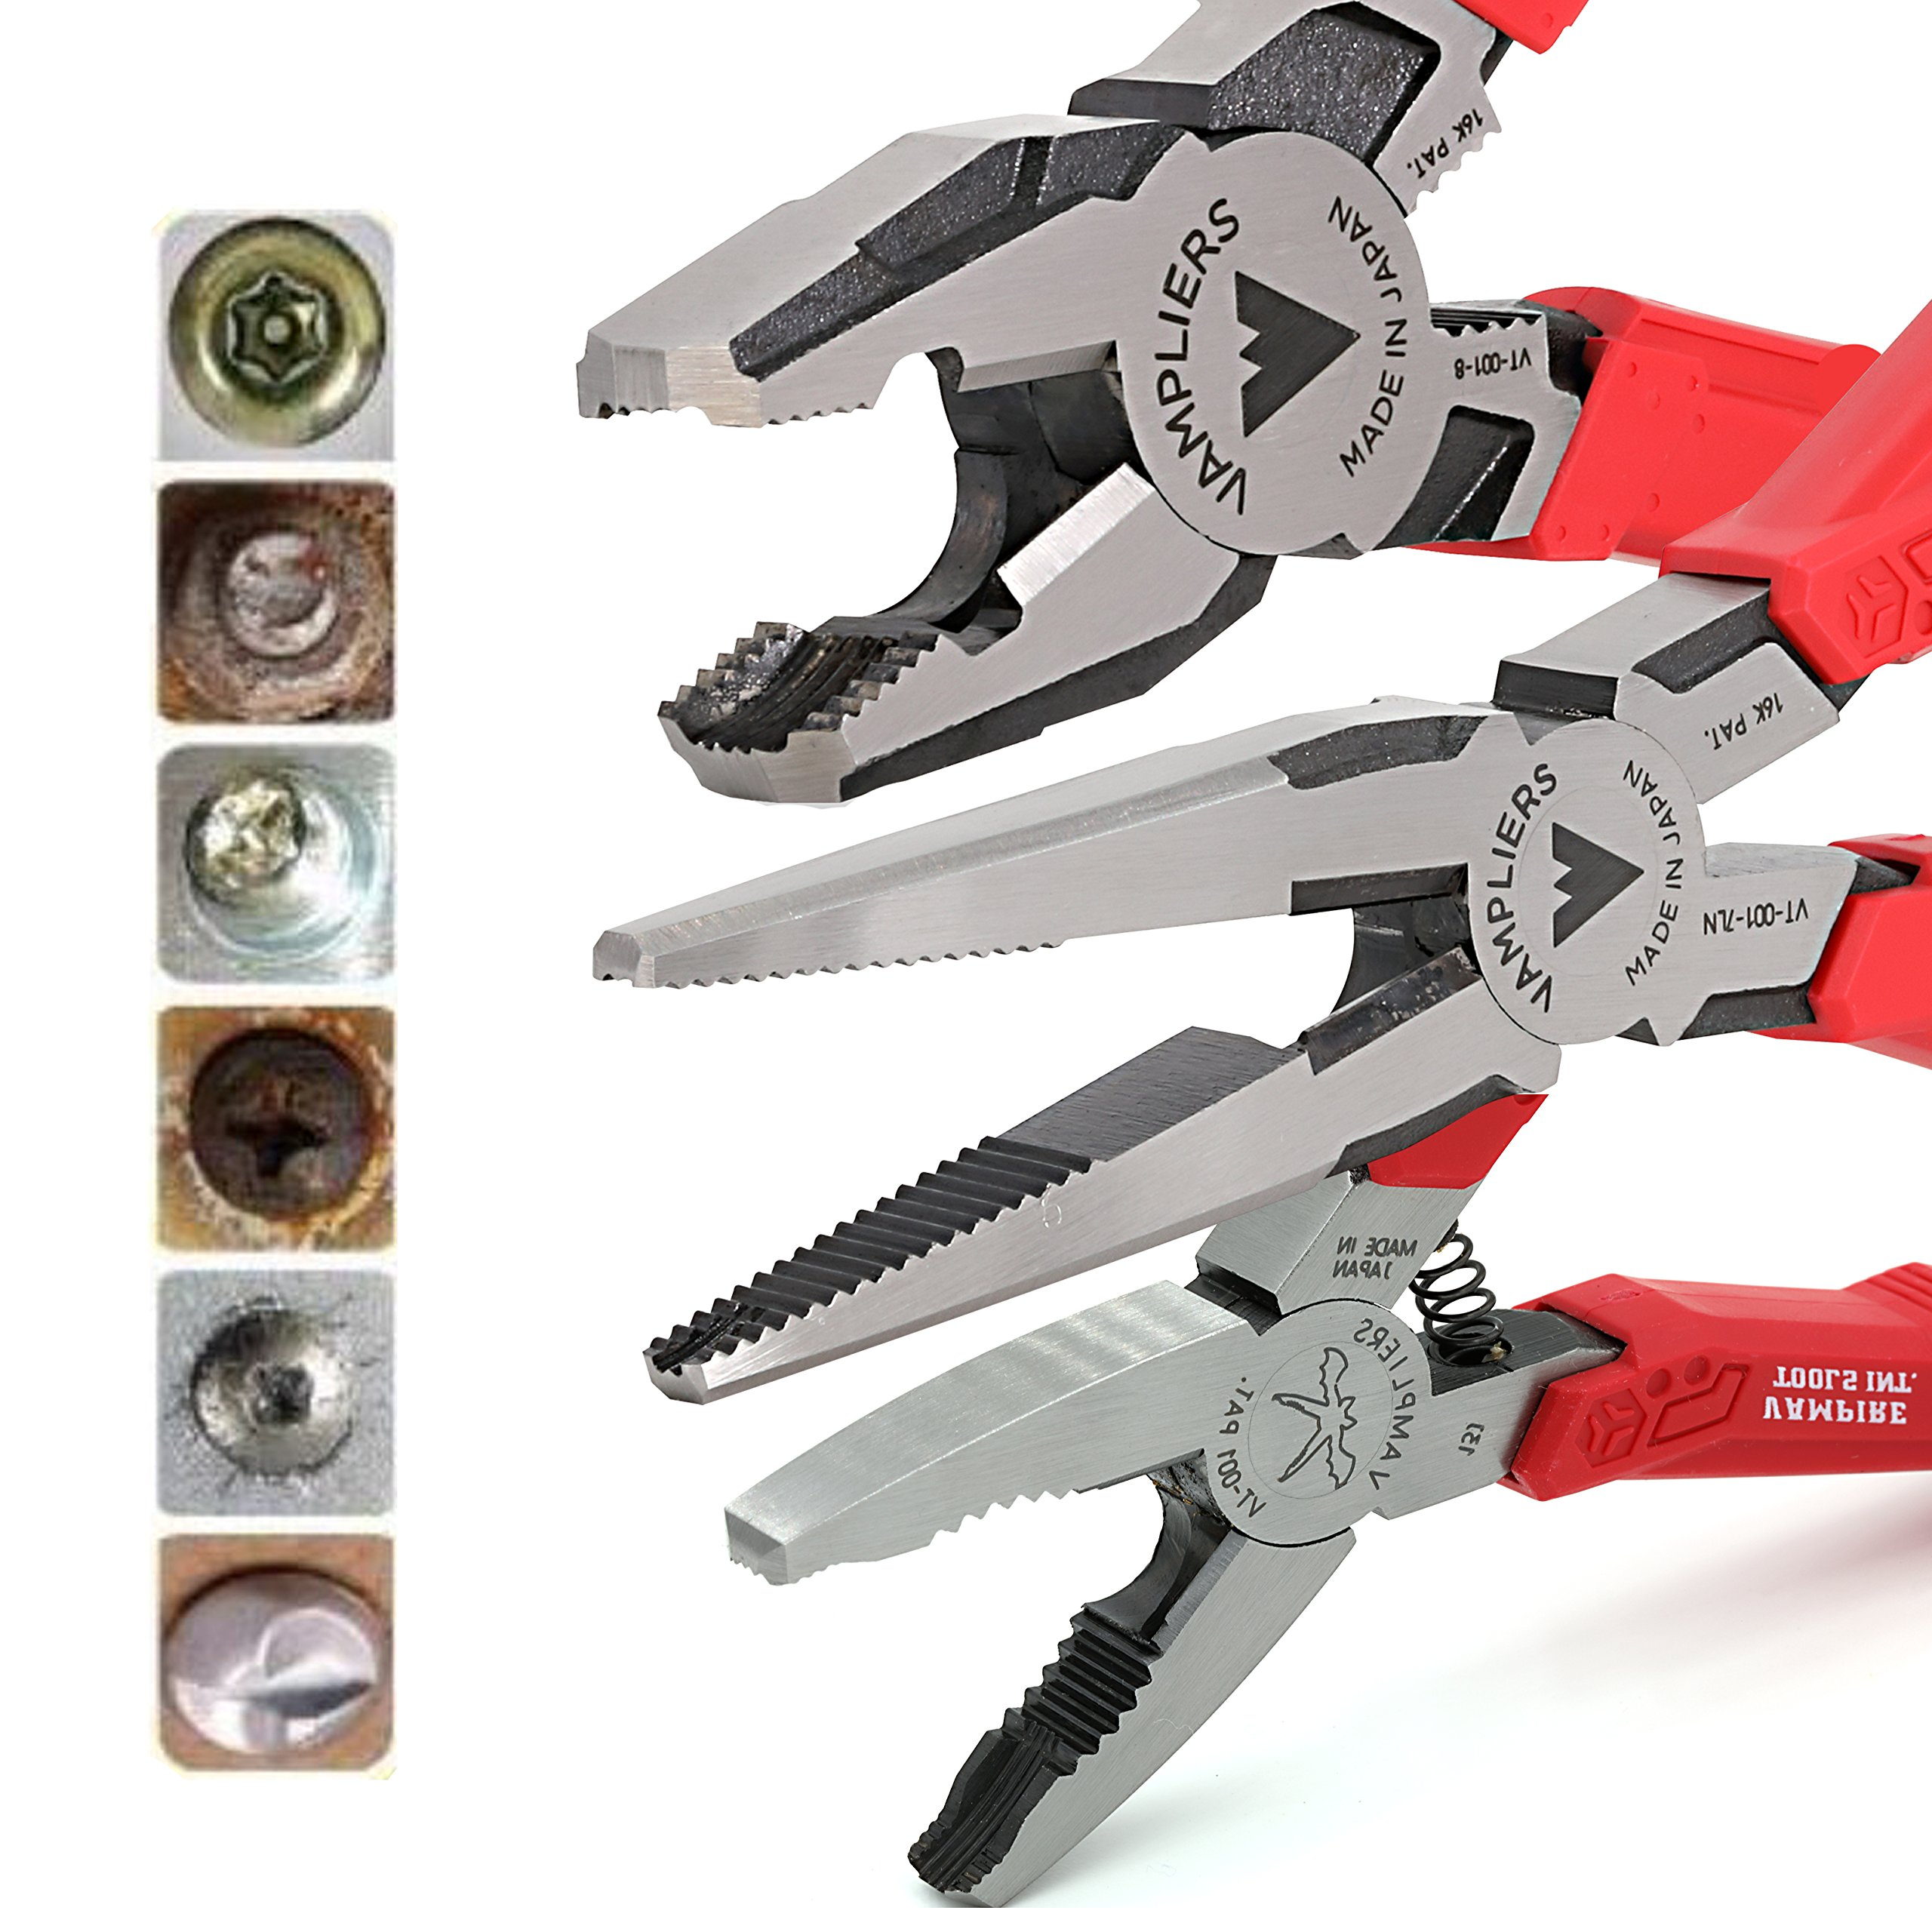 VamPLIERS World's Best Pliers VT-001-S3F Rusted/Damage/Security Screw Extraction Pliers Best Holiday Christmas Gift Ideal for Corporate/Friends and Family Gifts that last beyond Christmas season! by Vampliers